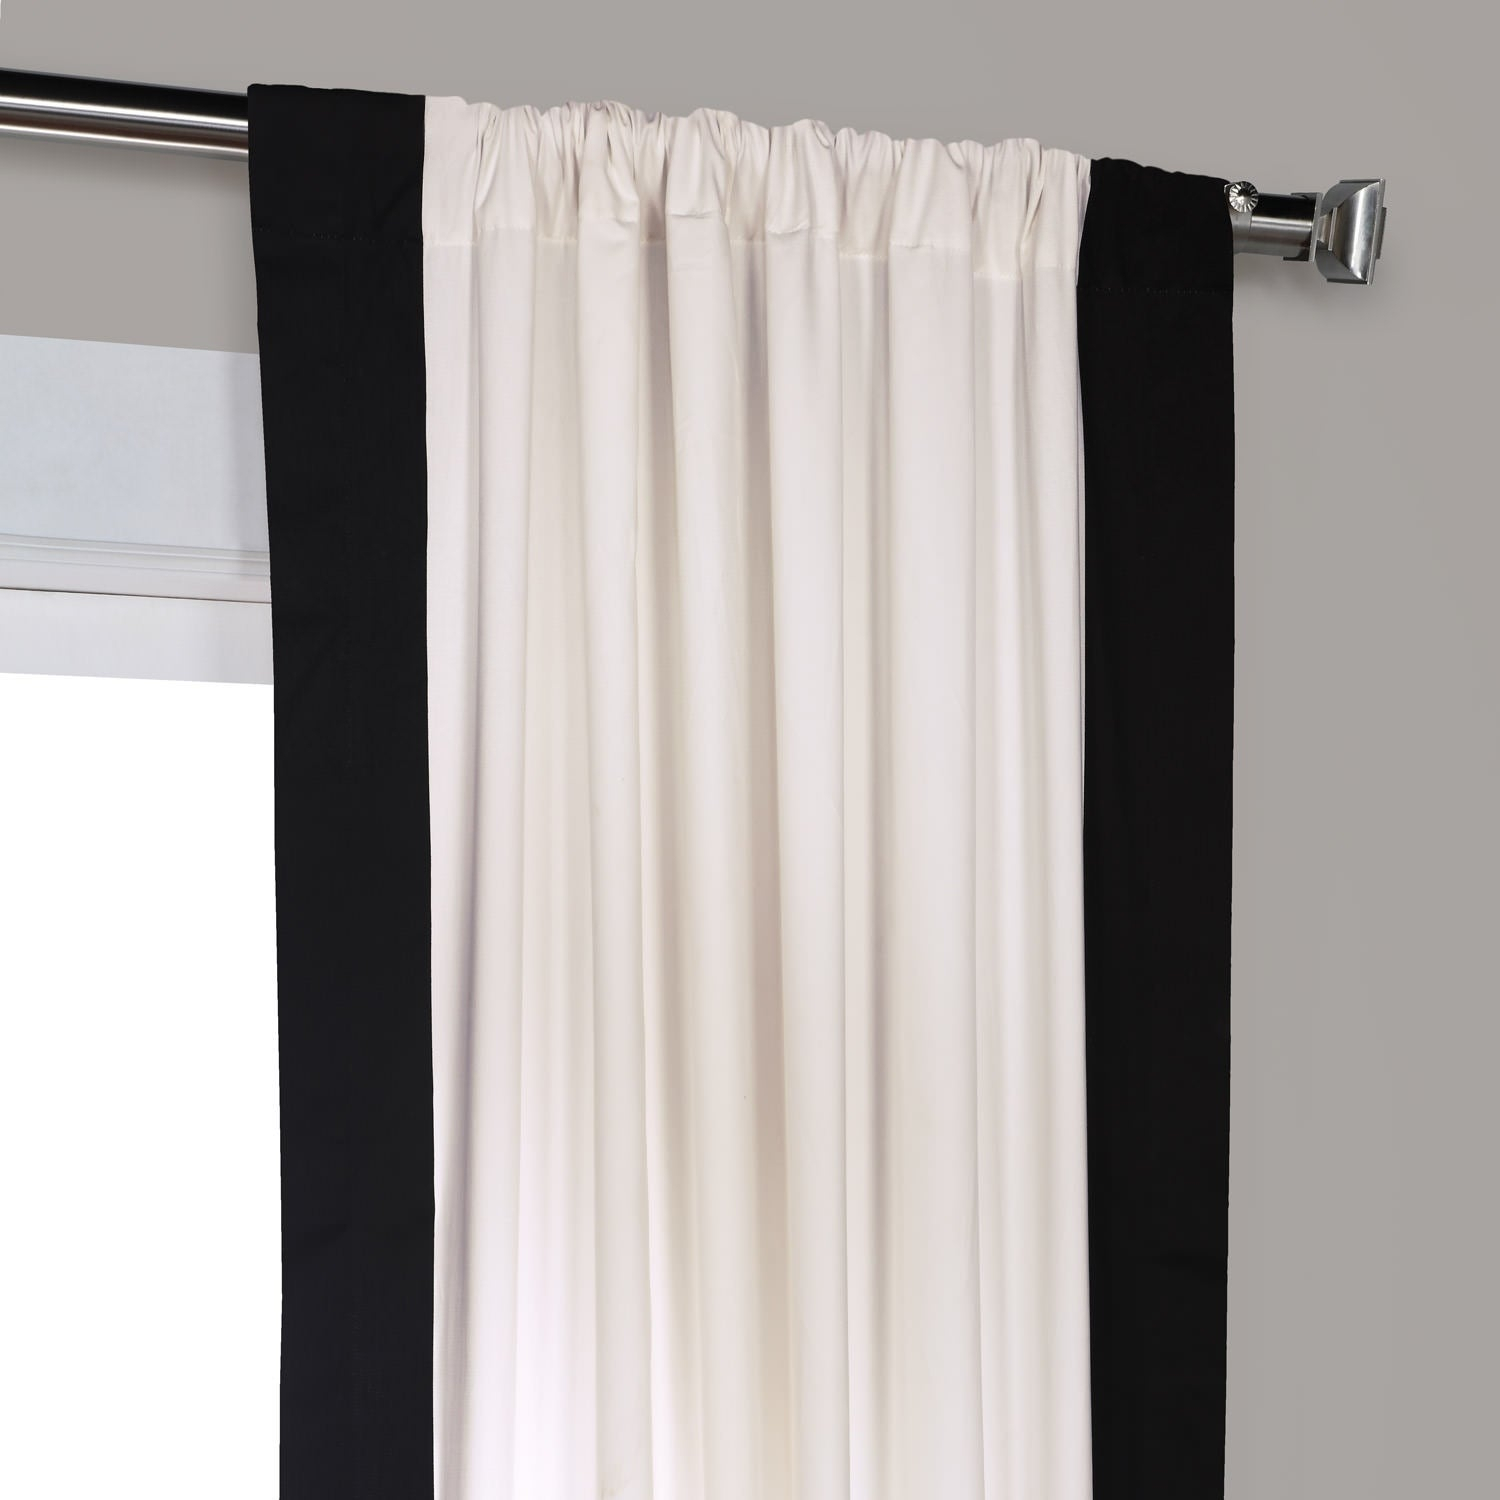 Exclusive Fabrics Vertical Colorblock Panama Curtain Pertaining To Vertical Colorblock Panama Curtains (View 2 of 30)